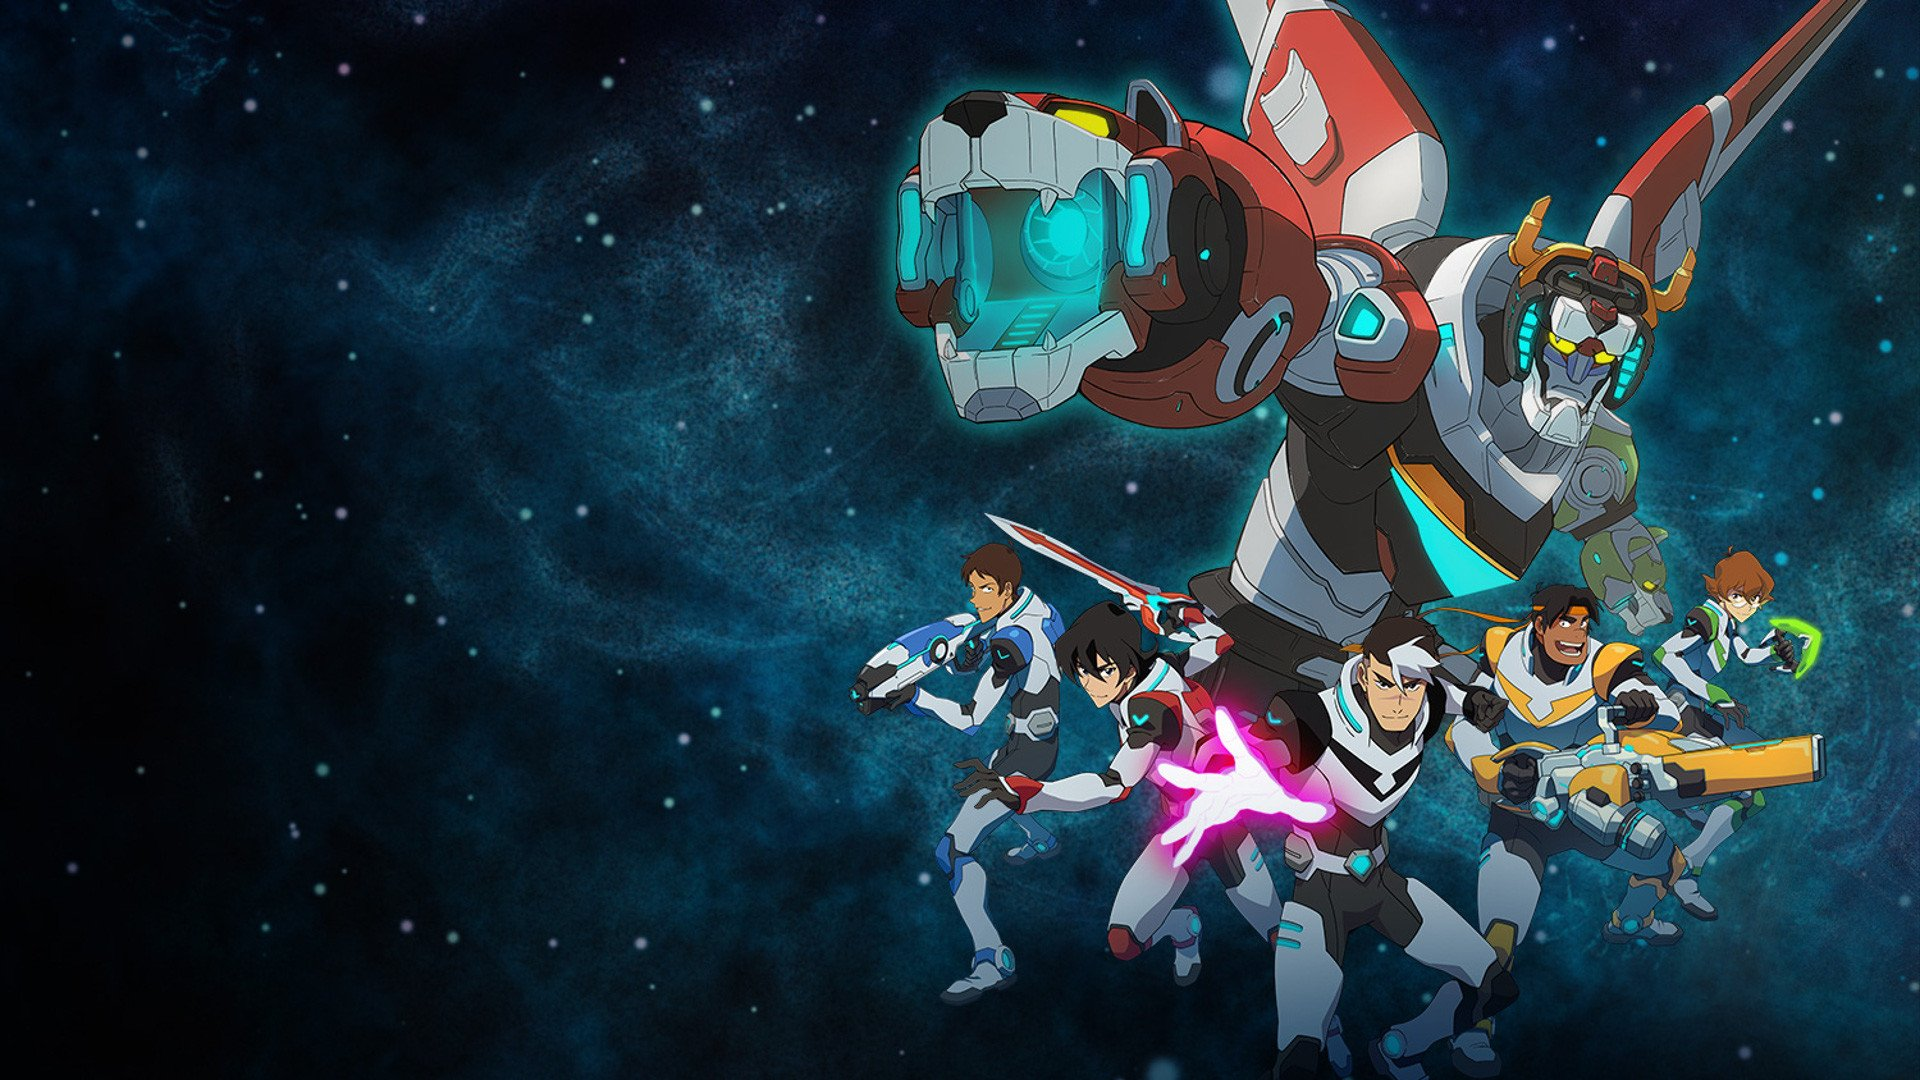 Free Download 82 Voltron Hd Wallpapers On Wallpaperplay 1920x1080